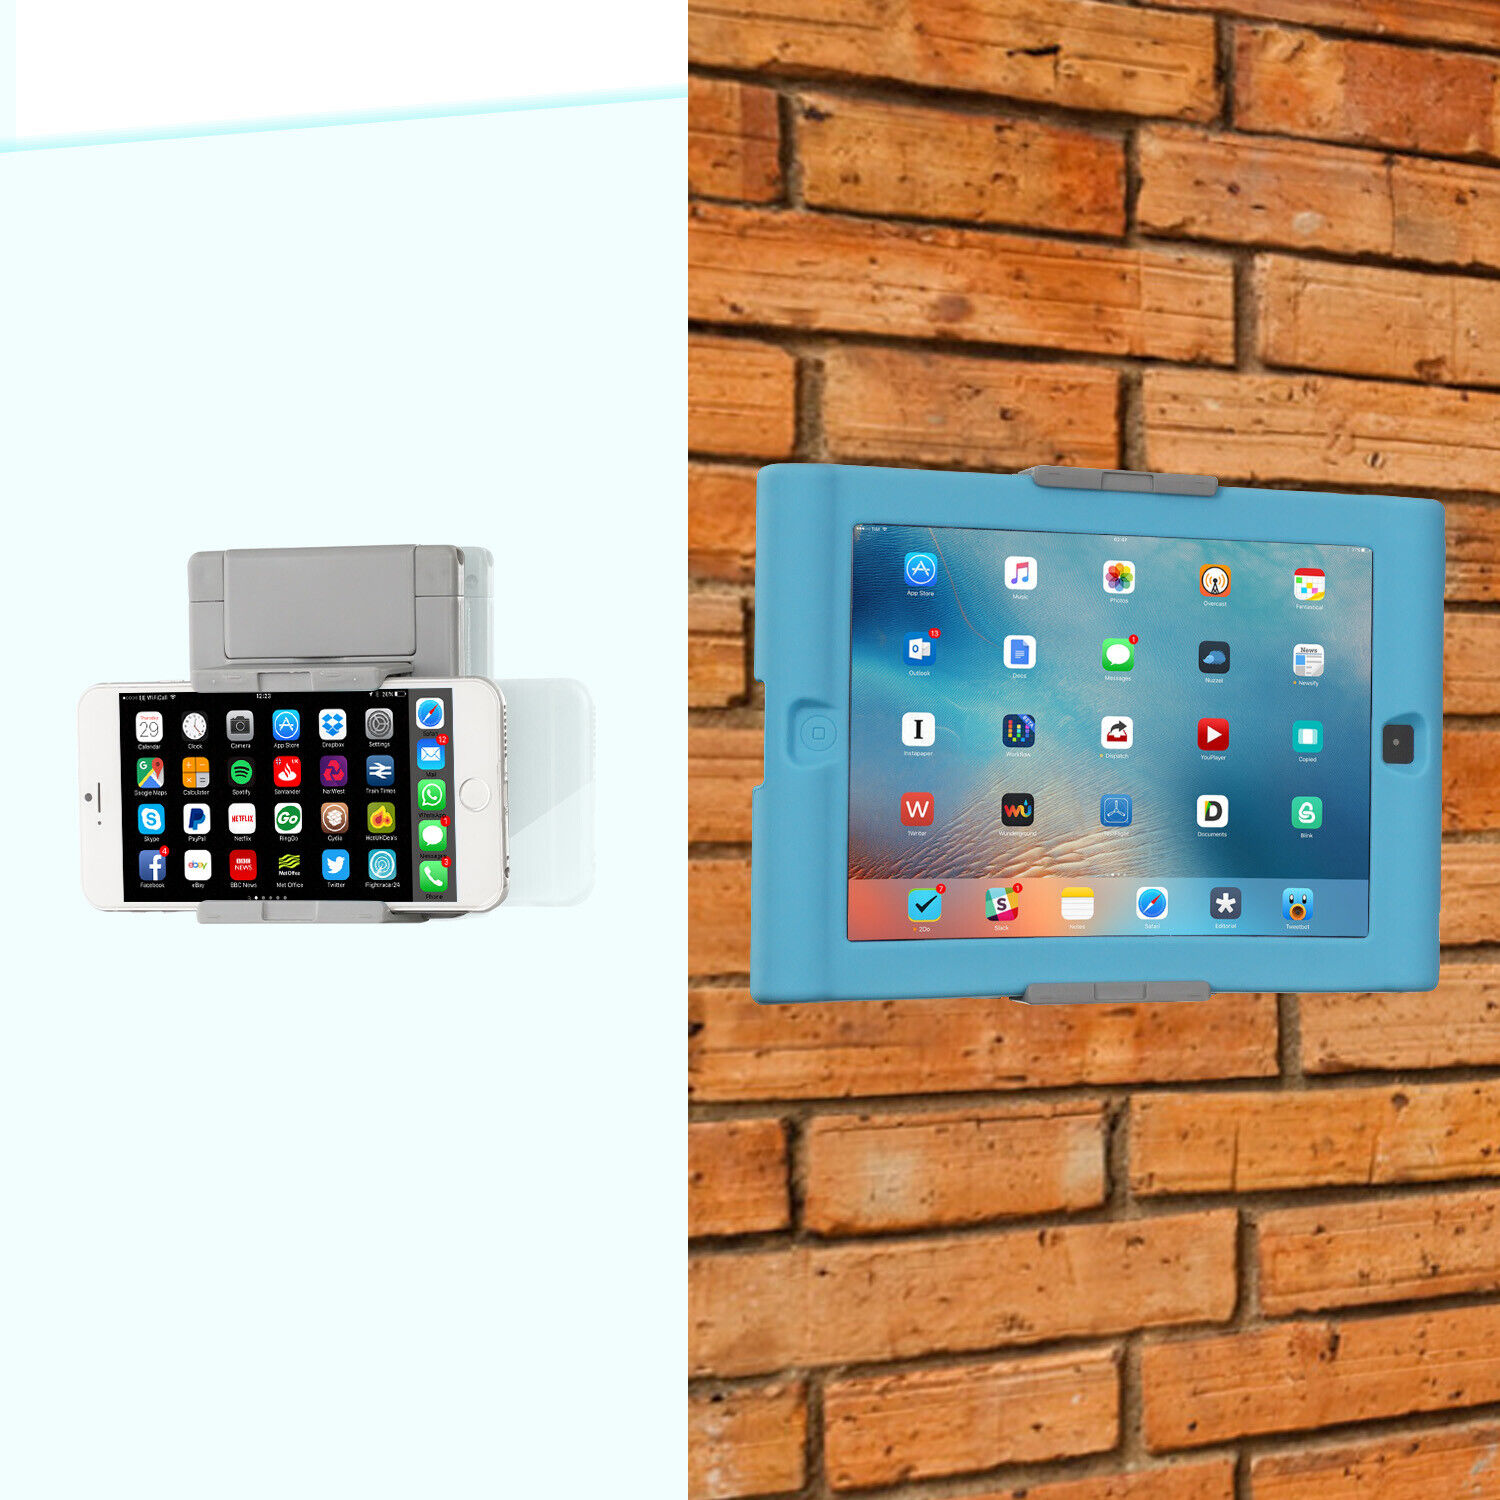 phones and tablets wall mount holder fit